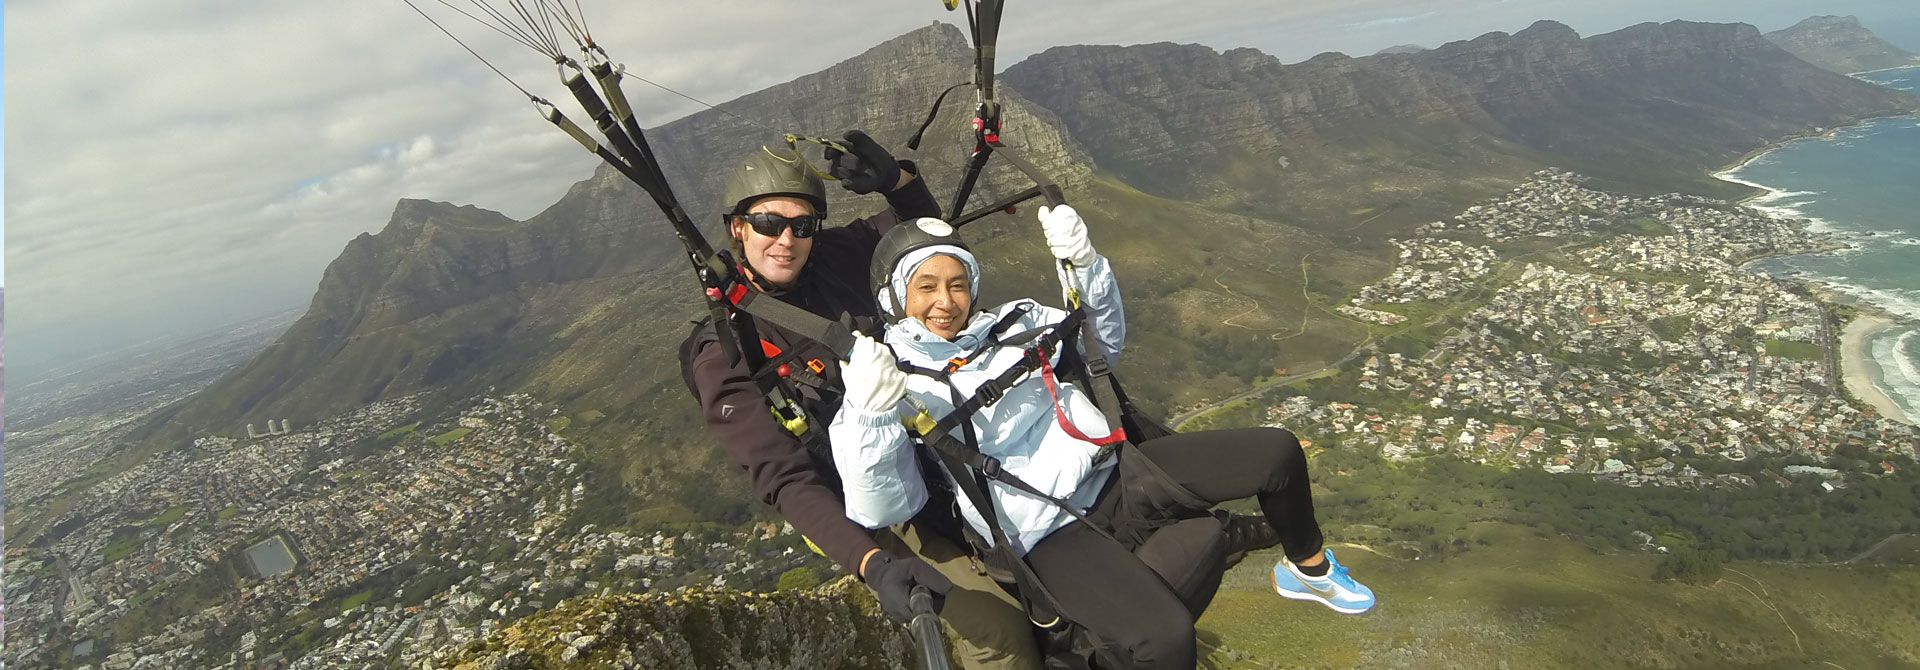 paragliding-over-lions-head_1